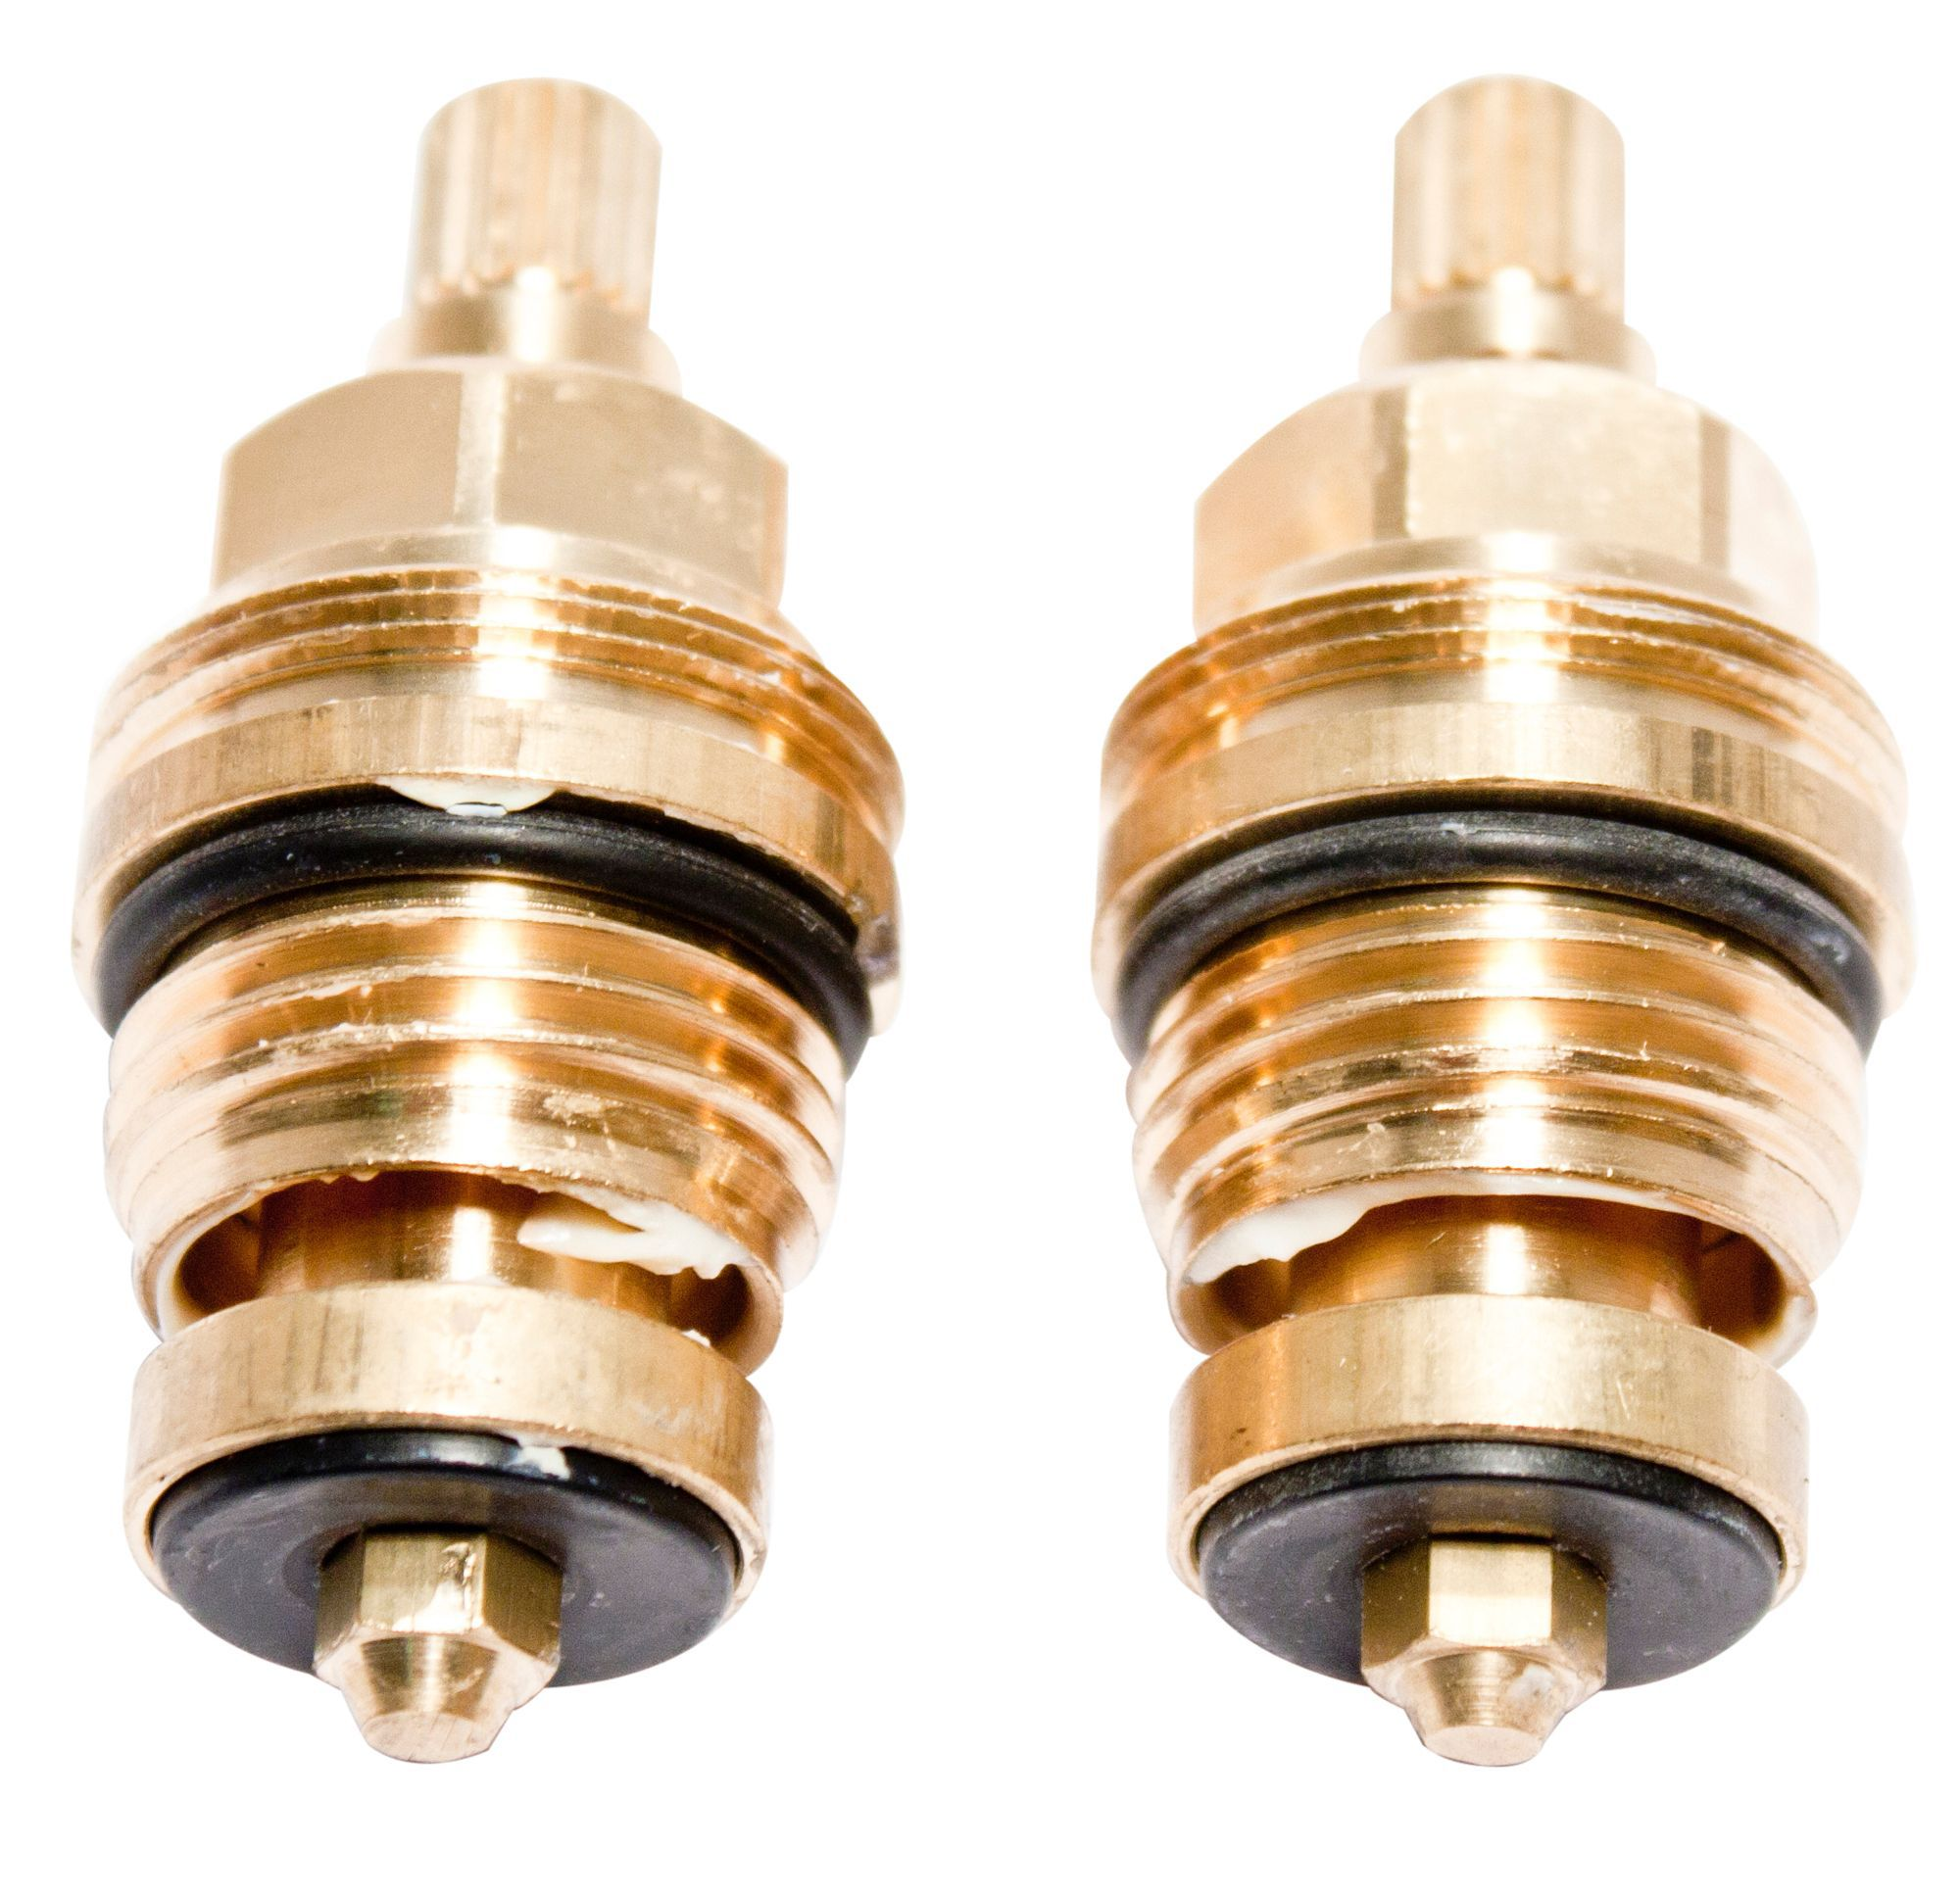 Plumbsure Brass Threaded Tap Gland With 8mm Spline